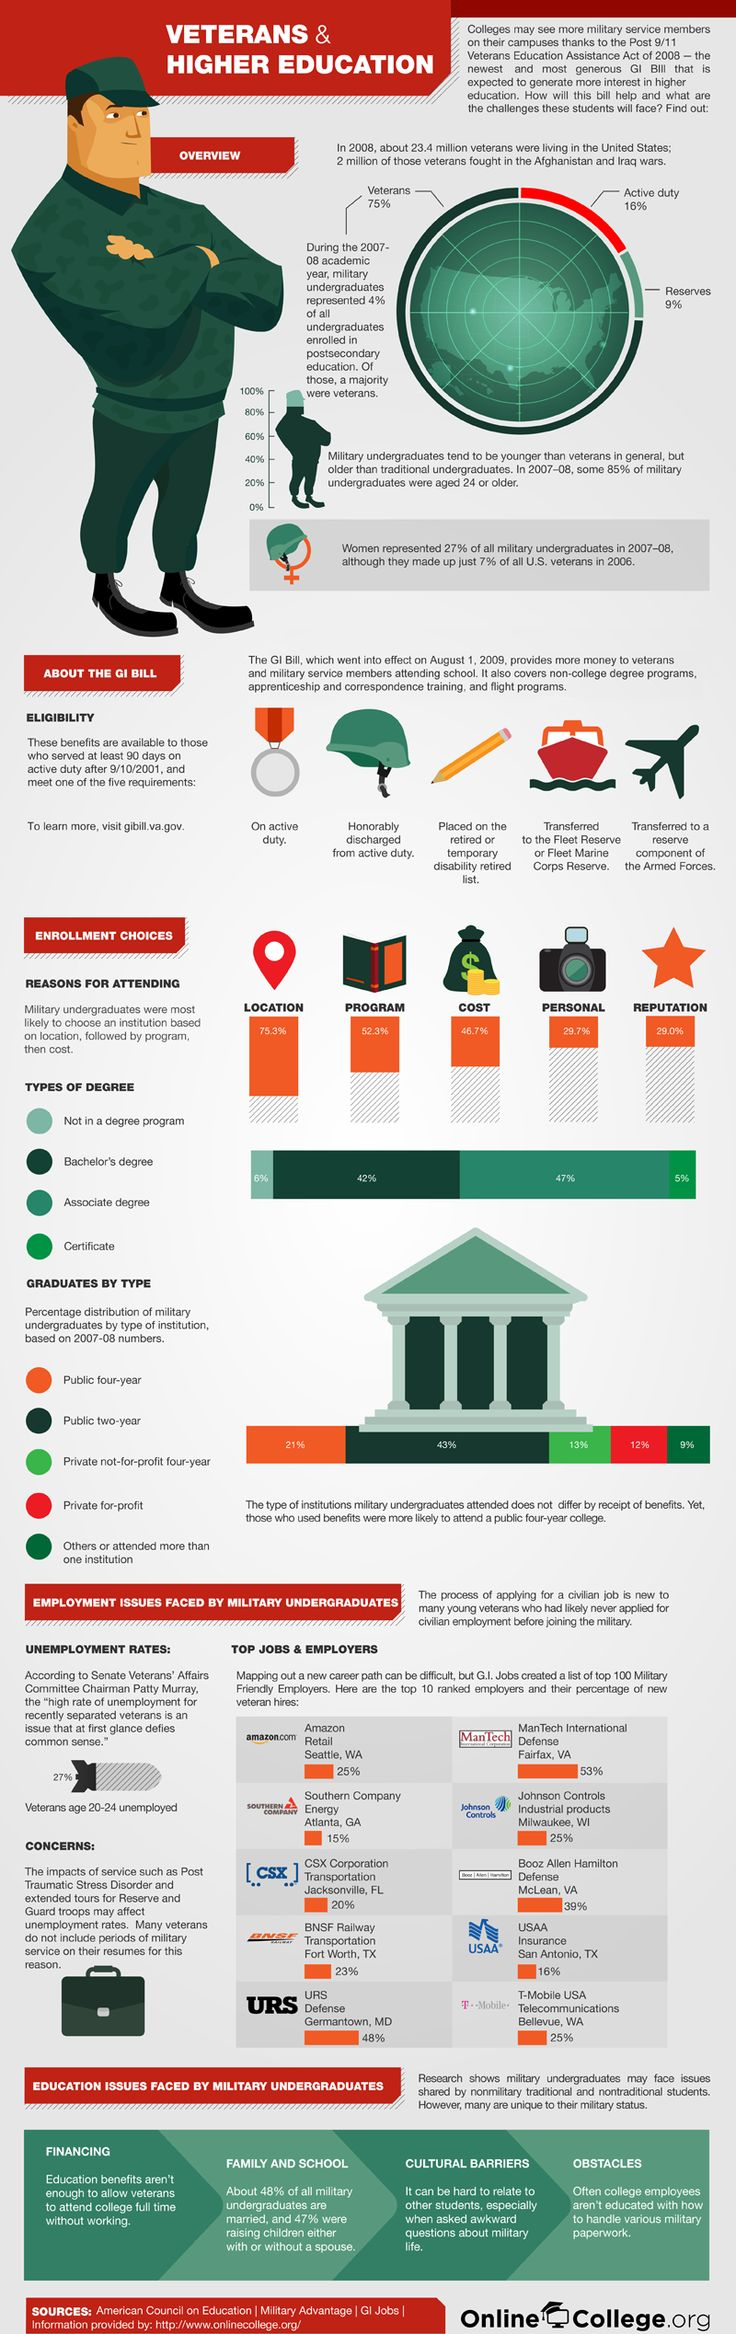 best student veterans images college majors gi veterans and higher education infographic specifically talks about reasons why veterans choose the colleges programs they end up in the top three were